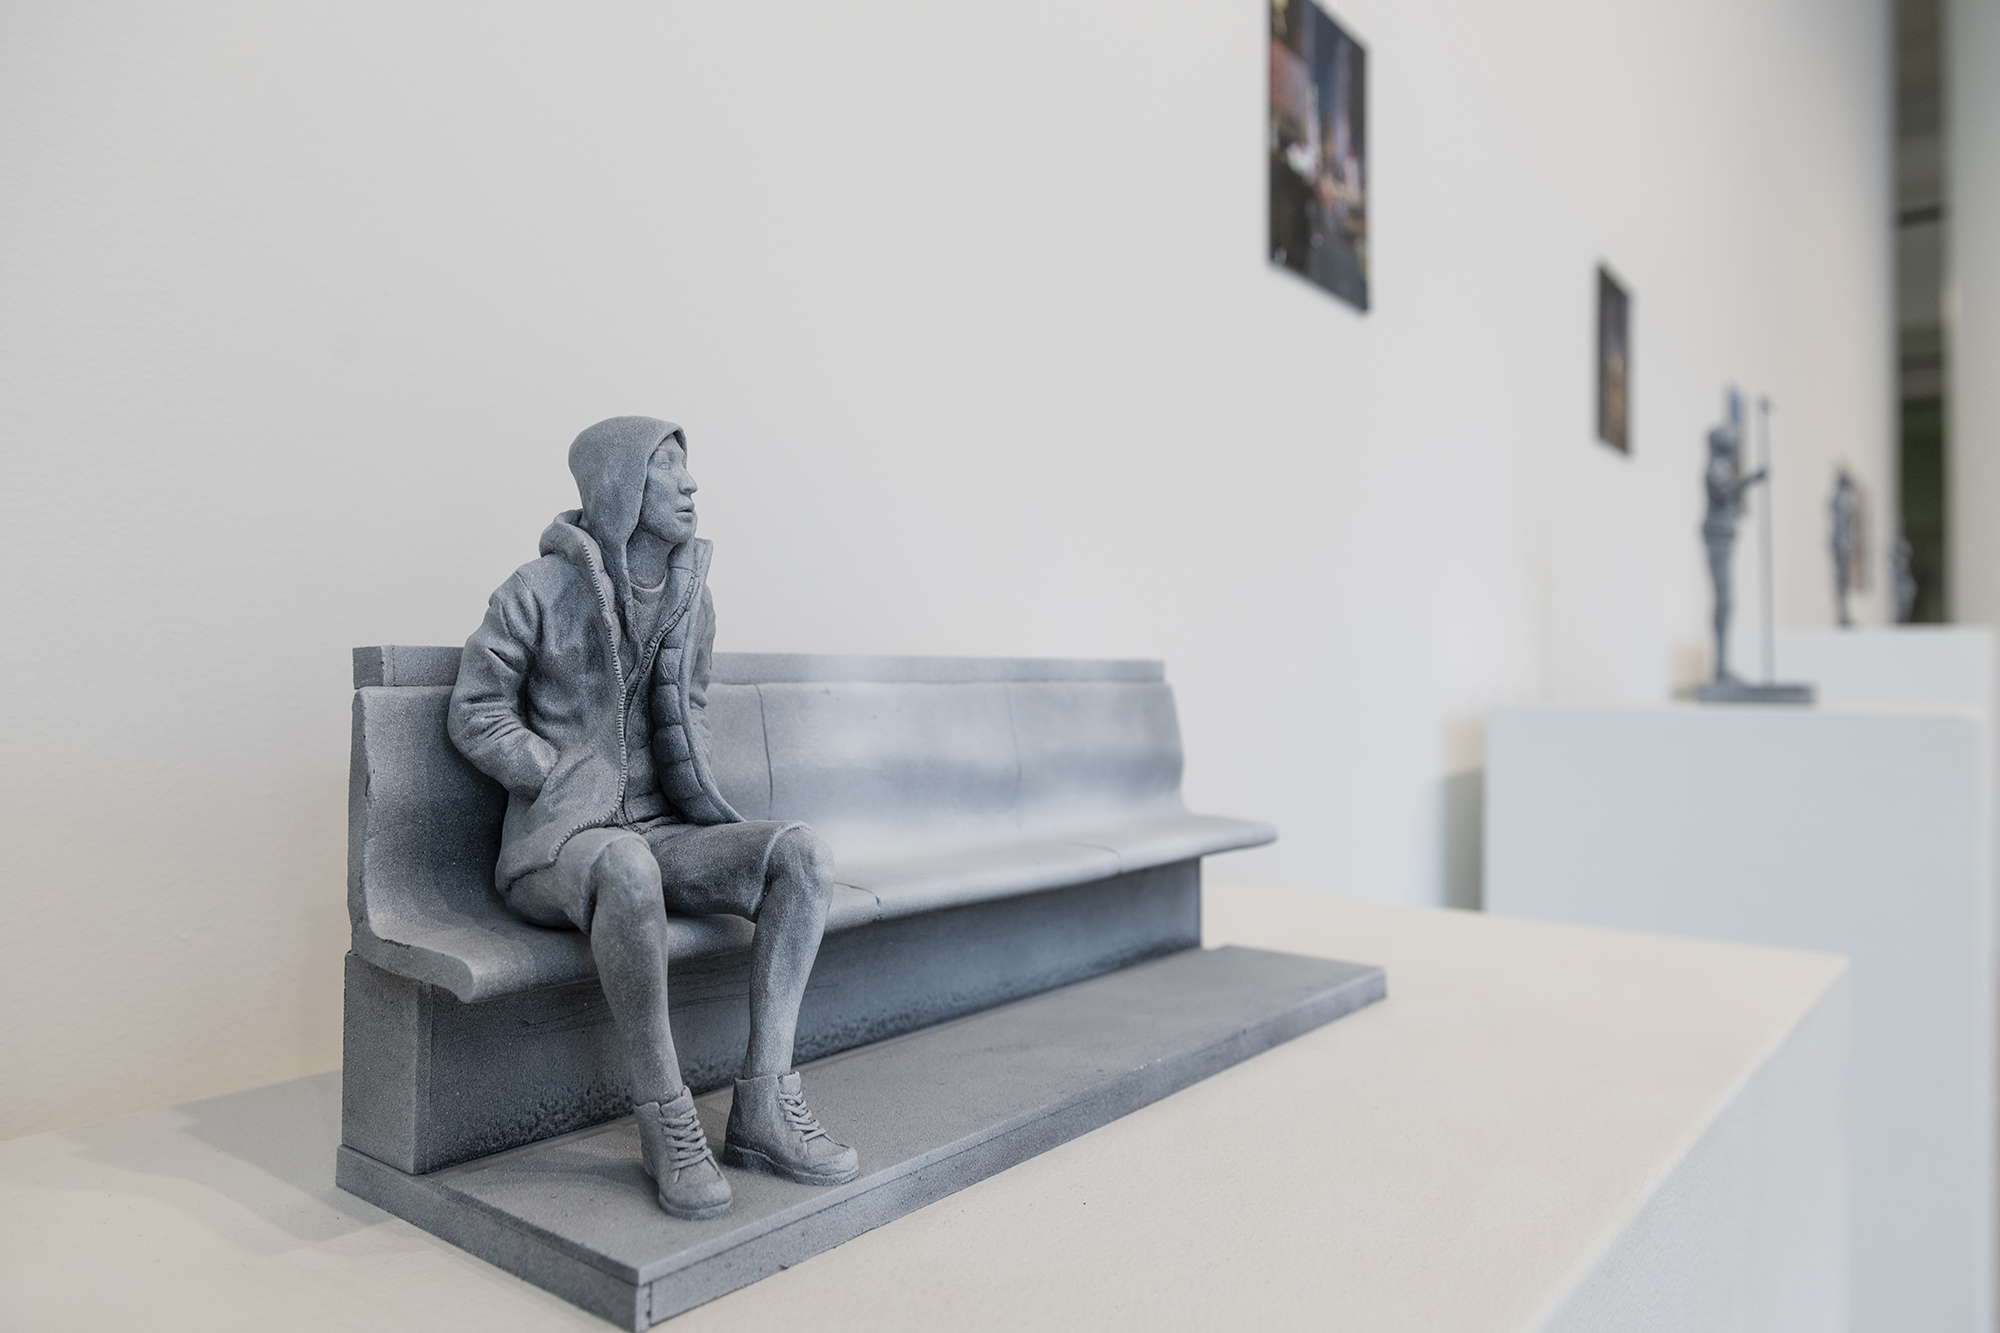 A sculpture of a person sitting on a bench.